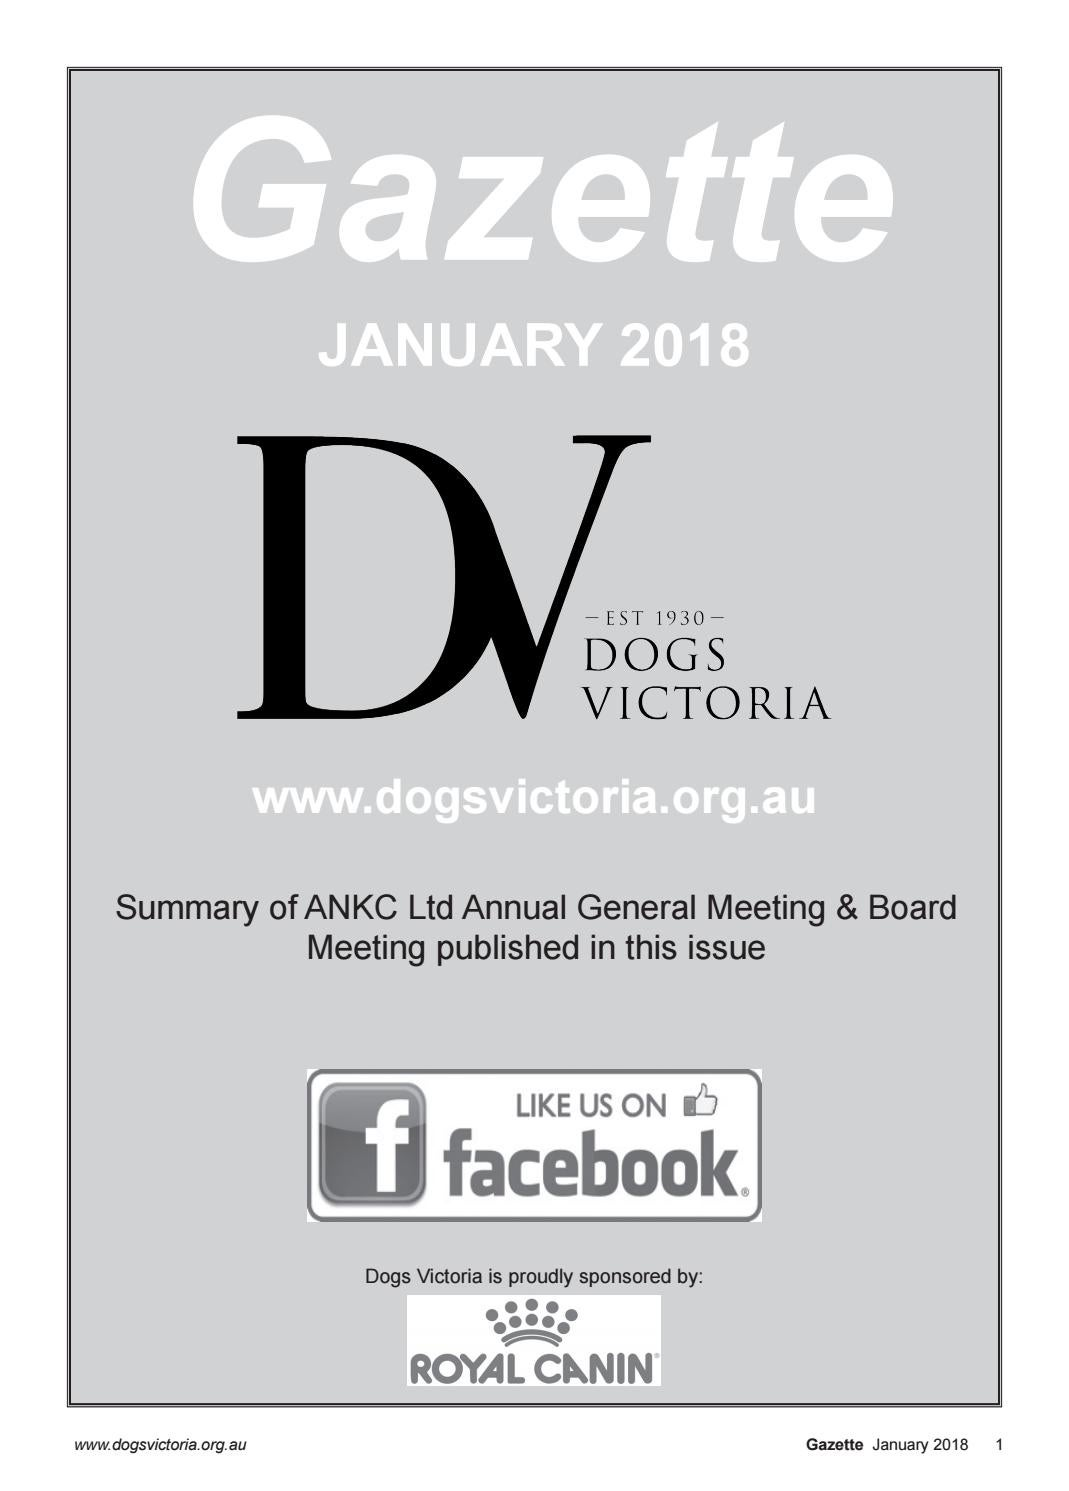 Dogs Victoria Gazette - January 2018 by Dogs Victoria - issuu